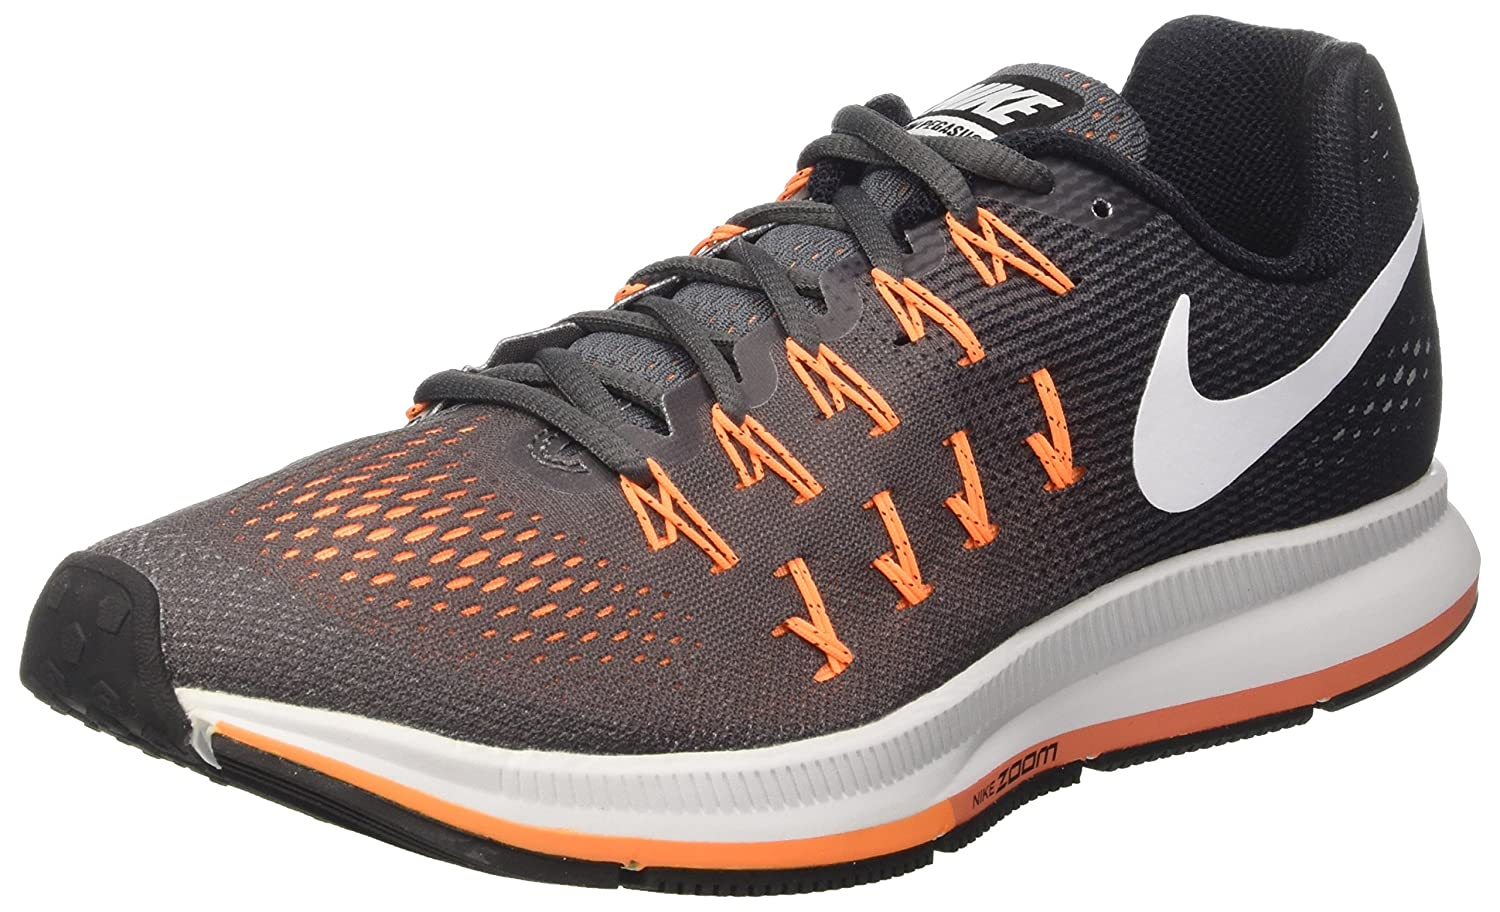 Nike Men's Air Zoom Pegasus 33 B01CHEUSG2 10 D(M) US|Dark Grey/White/Black/Bright Citrus